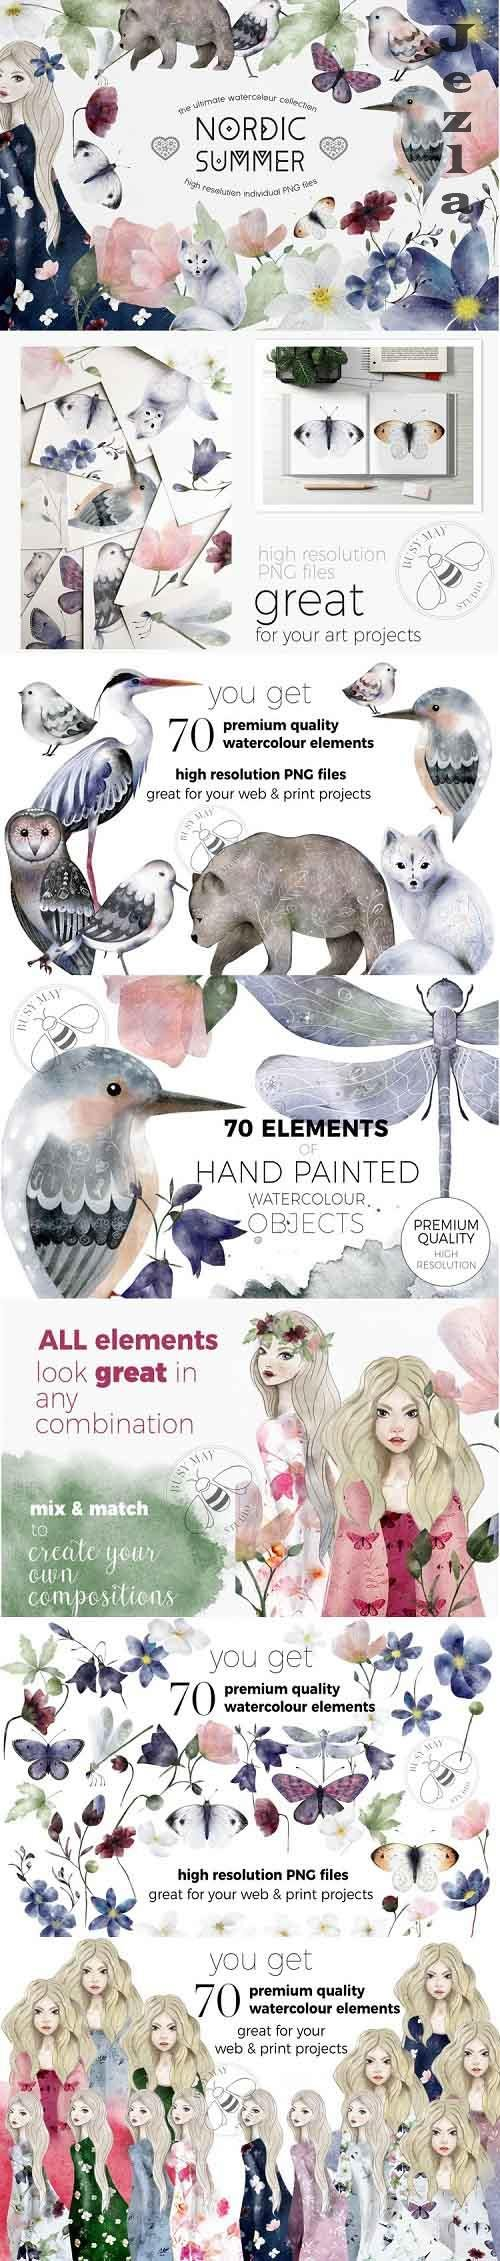 Nordic Summer Ultimate Collection Watercolor Animals Florals - 1022907